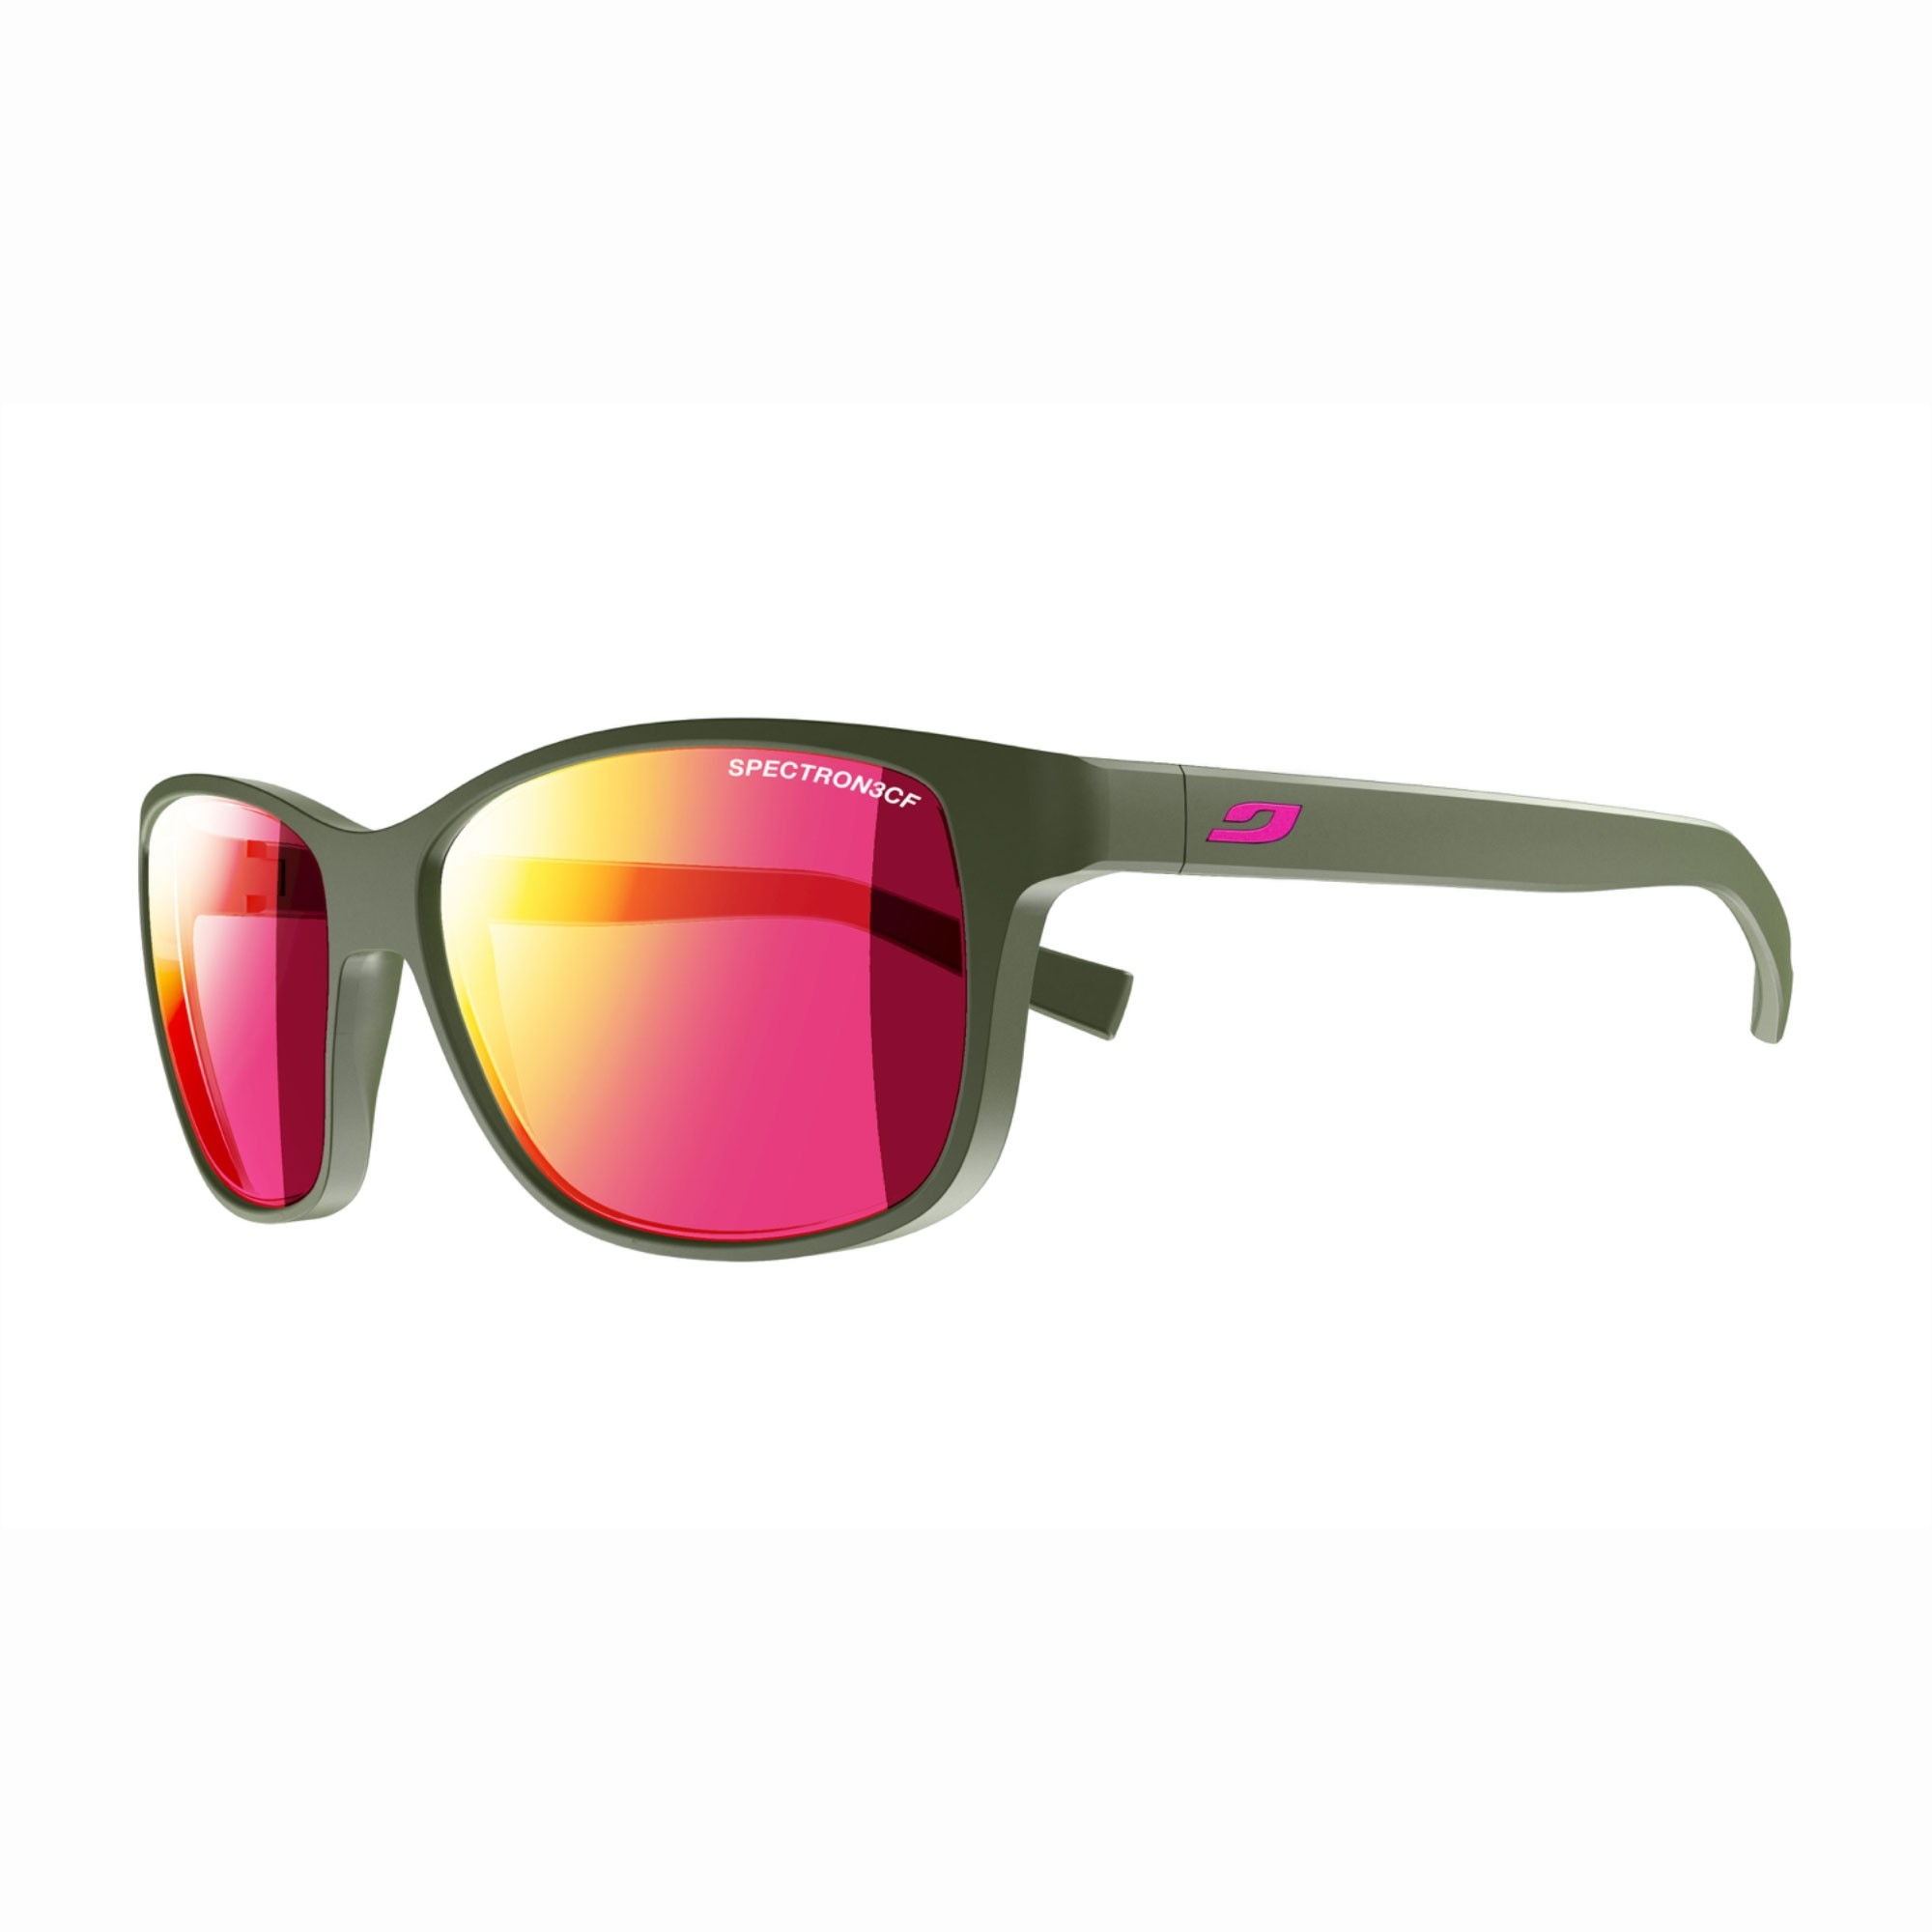 Julbo Powell Sunglasses - Army/Pink - Spectron 3CF